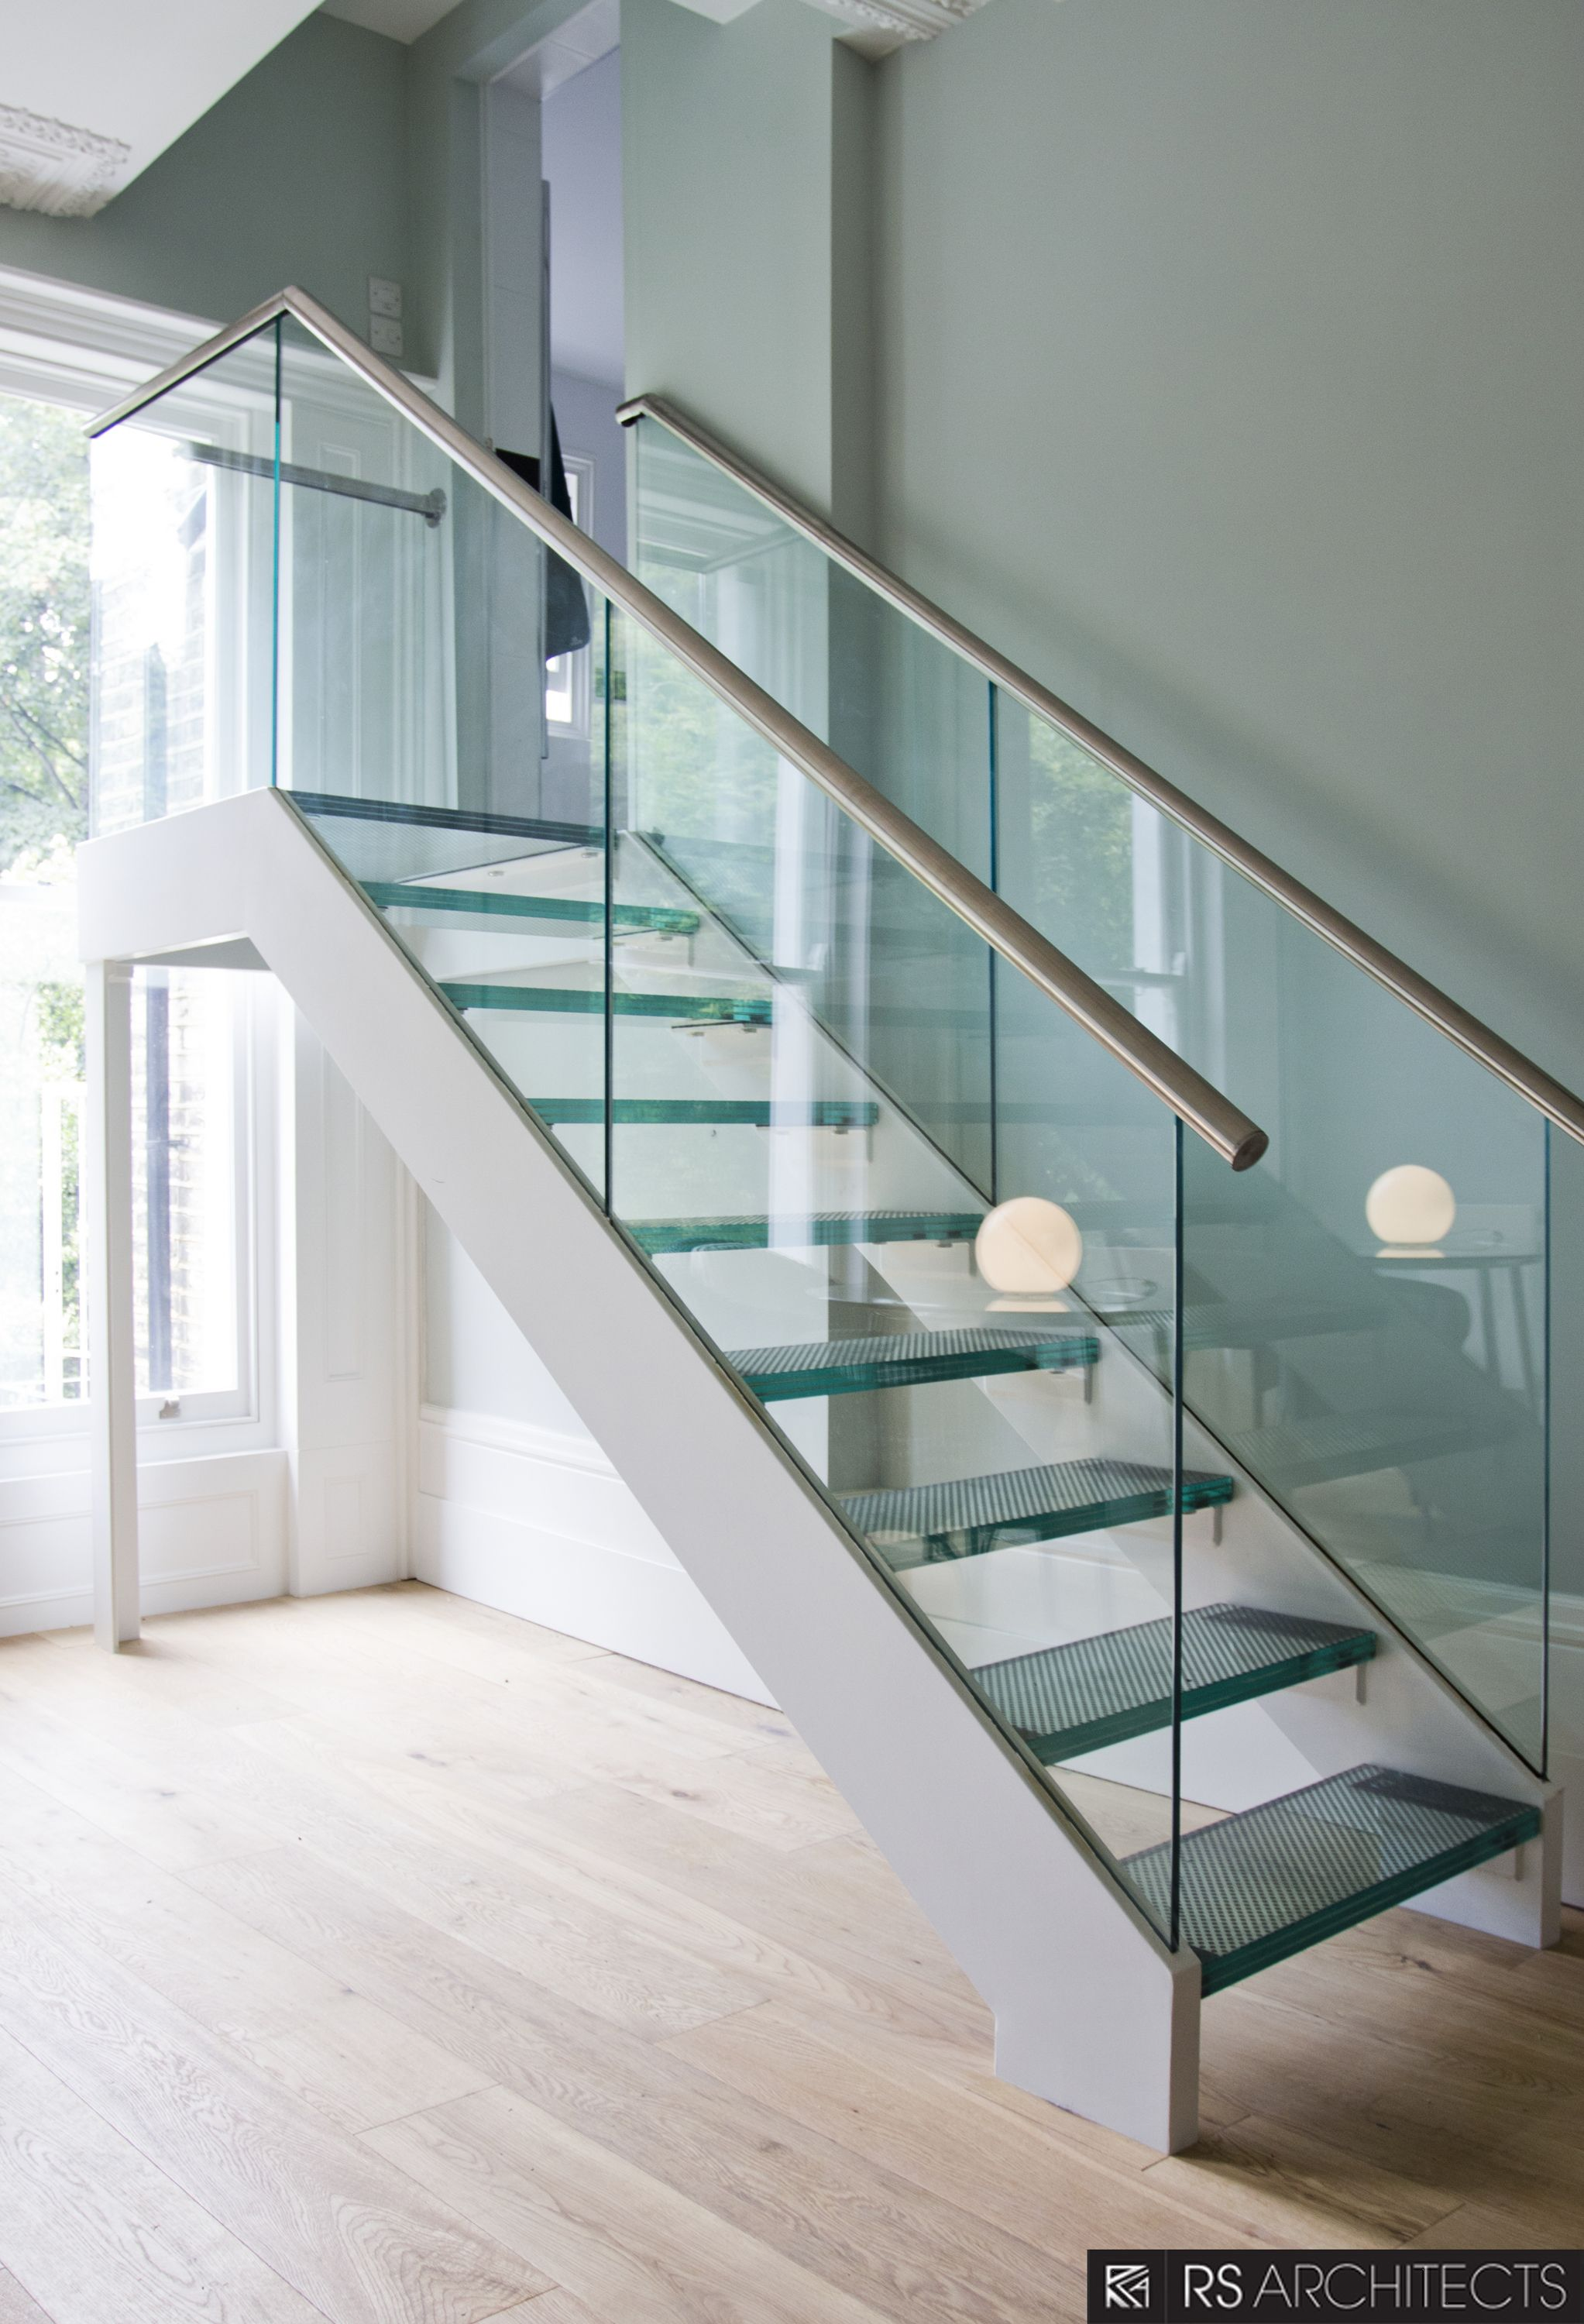 Picturesque Double Chrome Handrail With Glass Balustrade